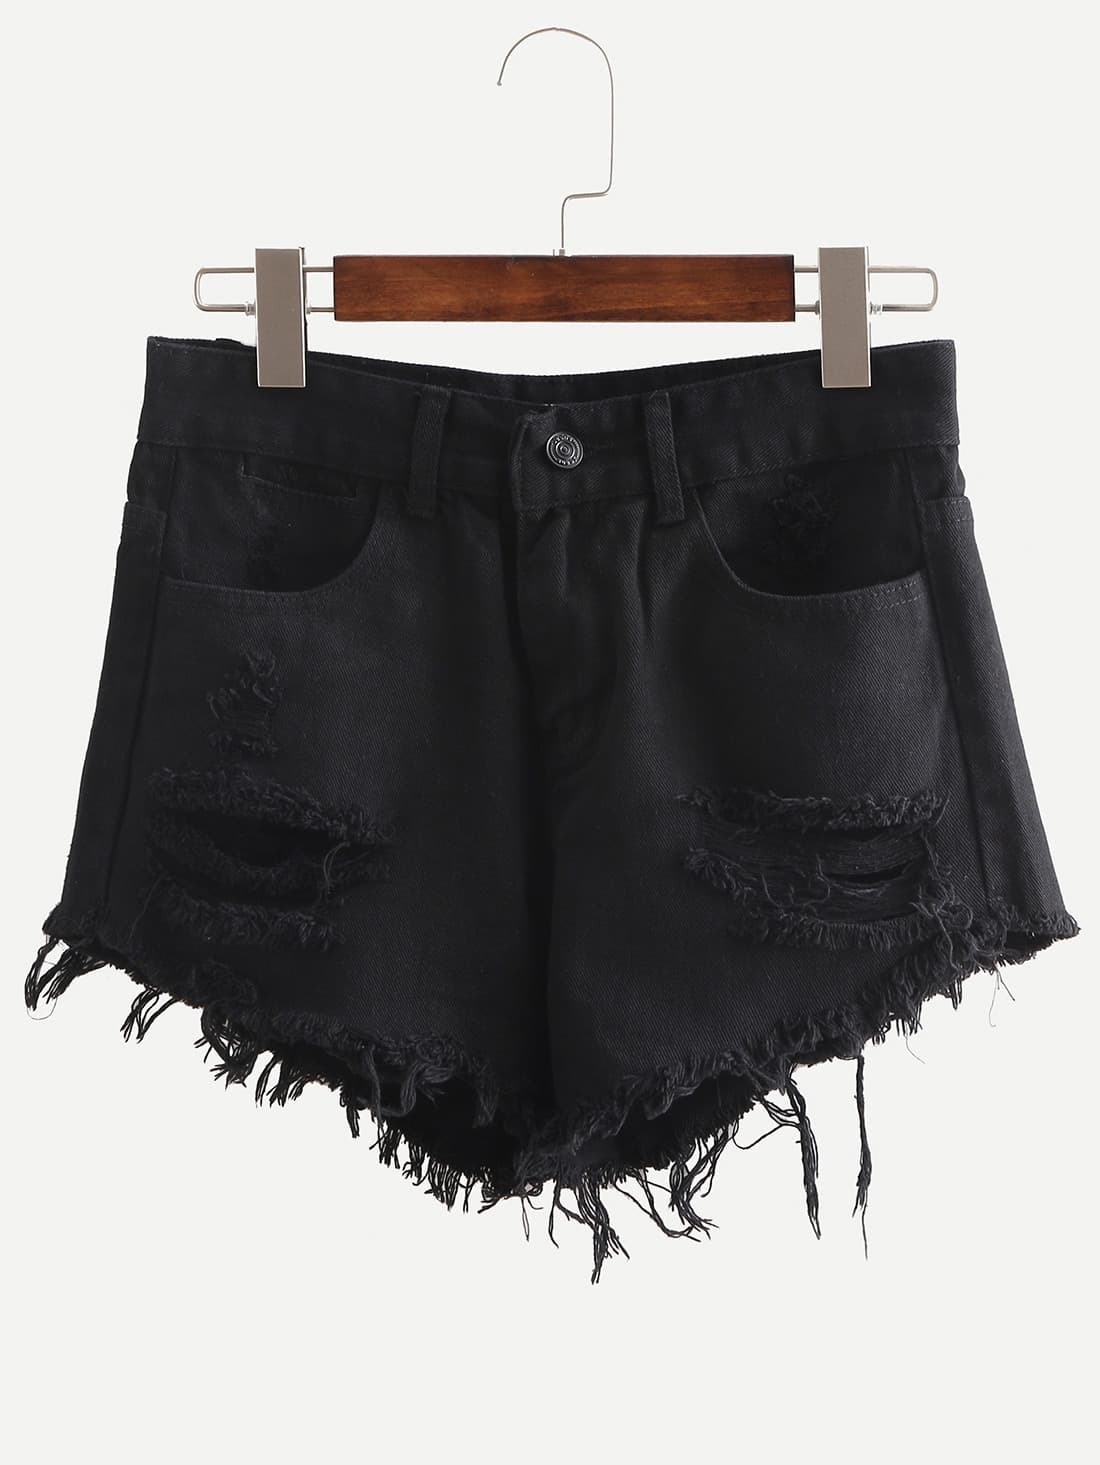 Ripped Raw Hem Denim Shorts автокресло concord concord автокресло air safe graphite grey